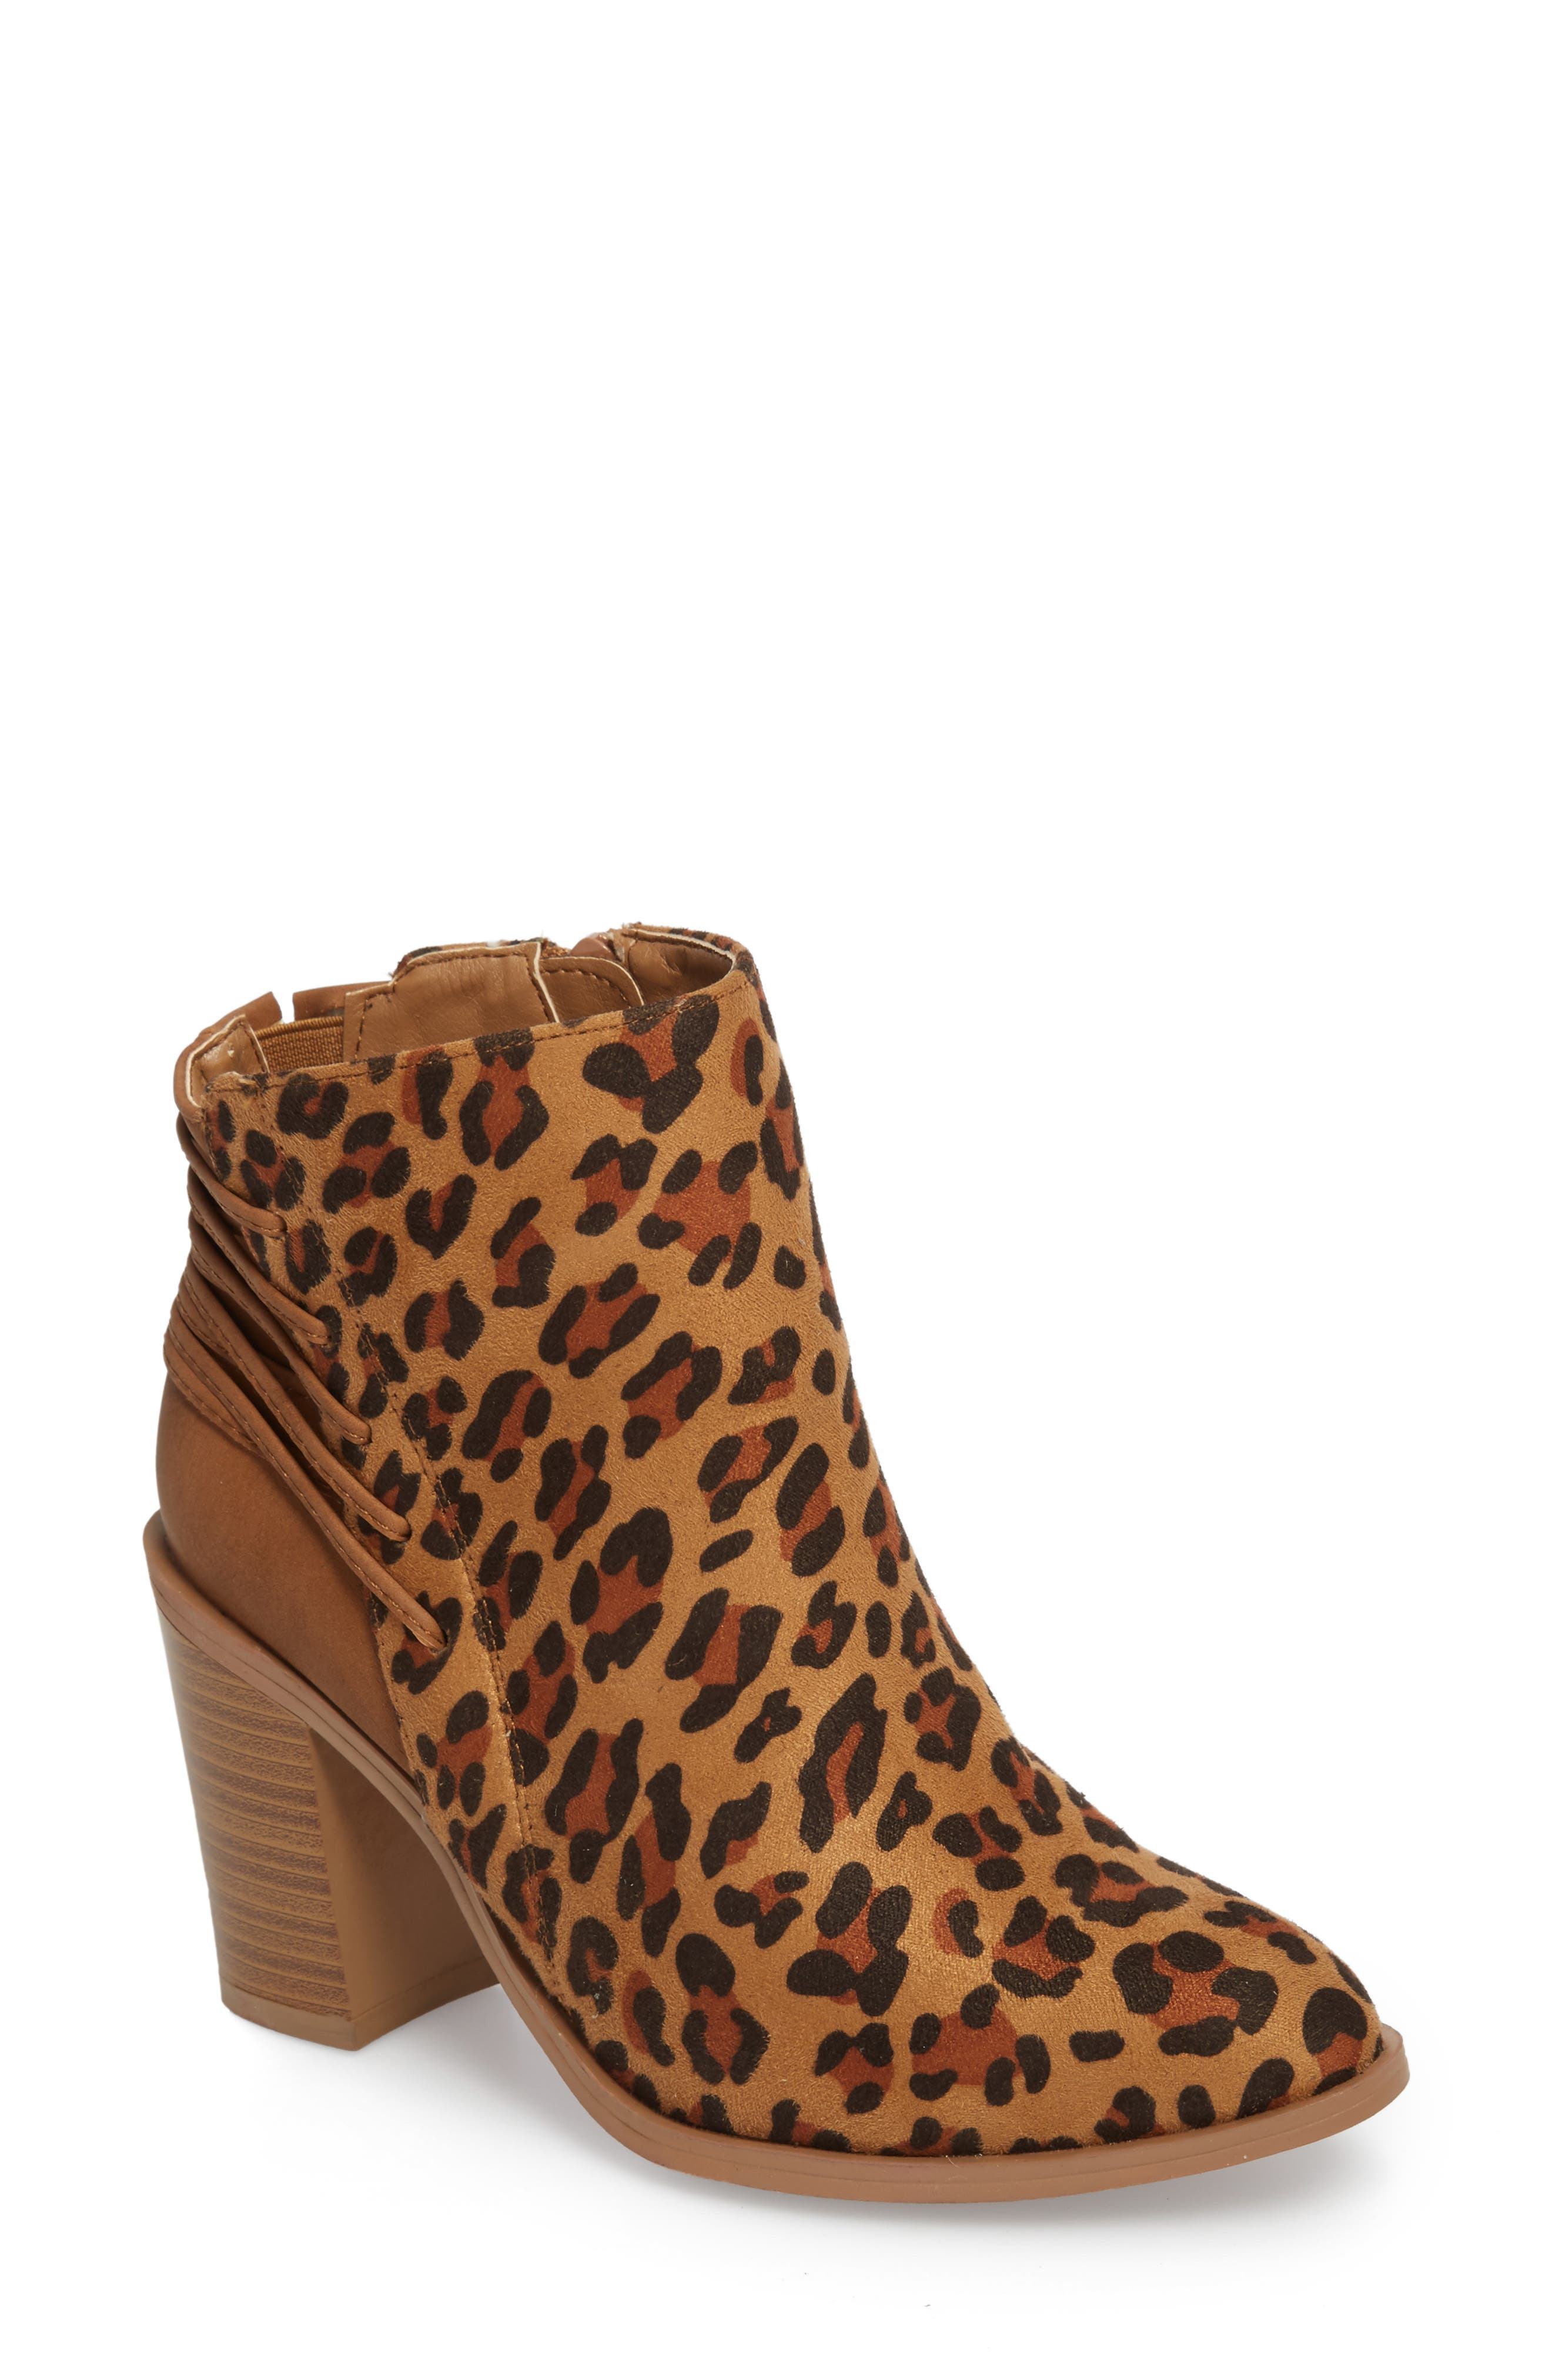 Lacey Leopard Bootie,                         Main,                         color, Tan Leopard Suede Leather